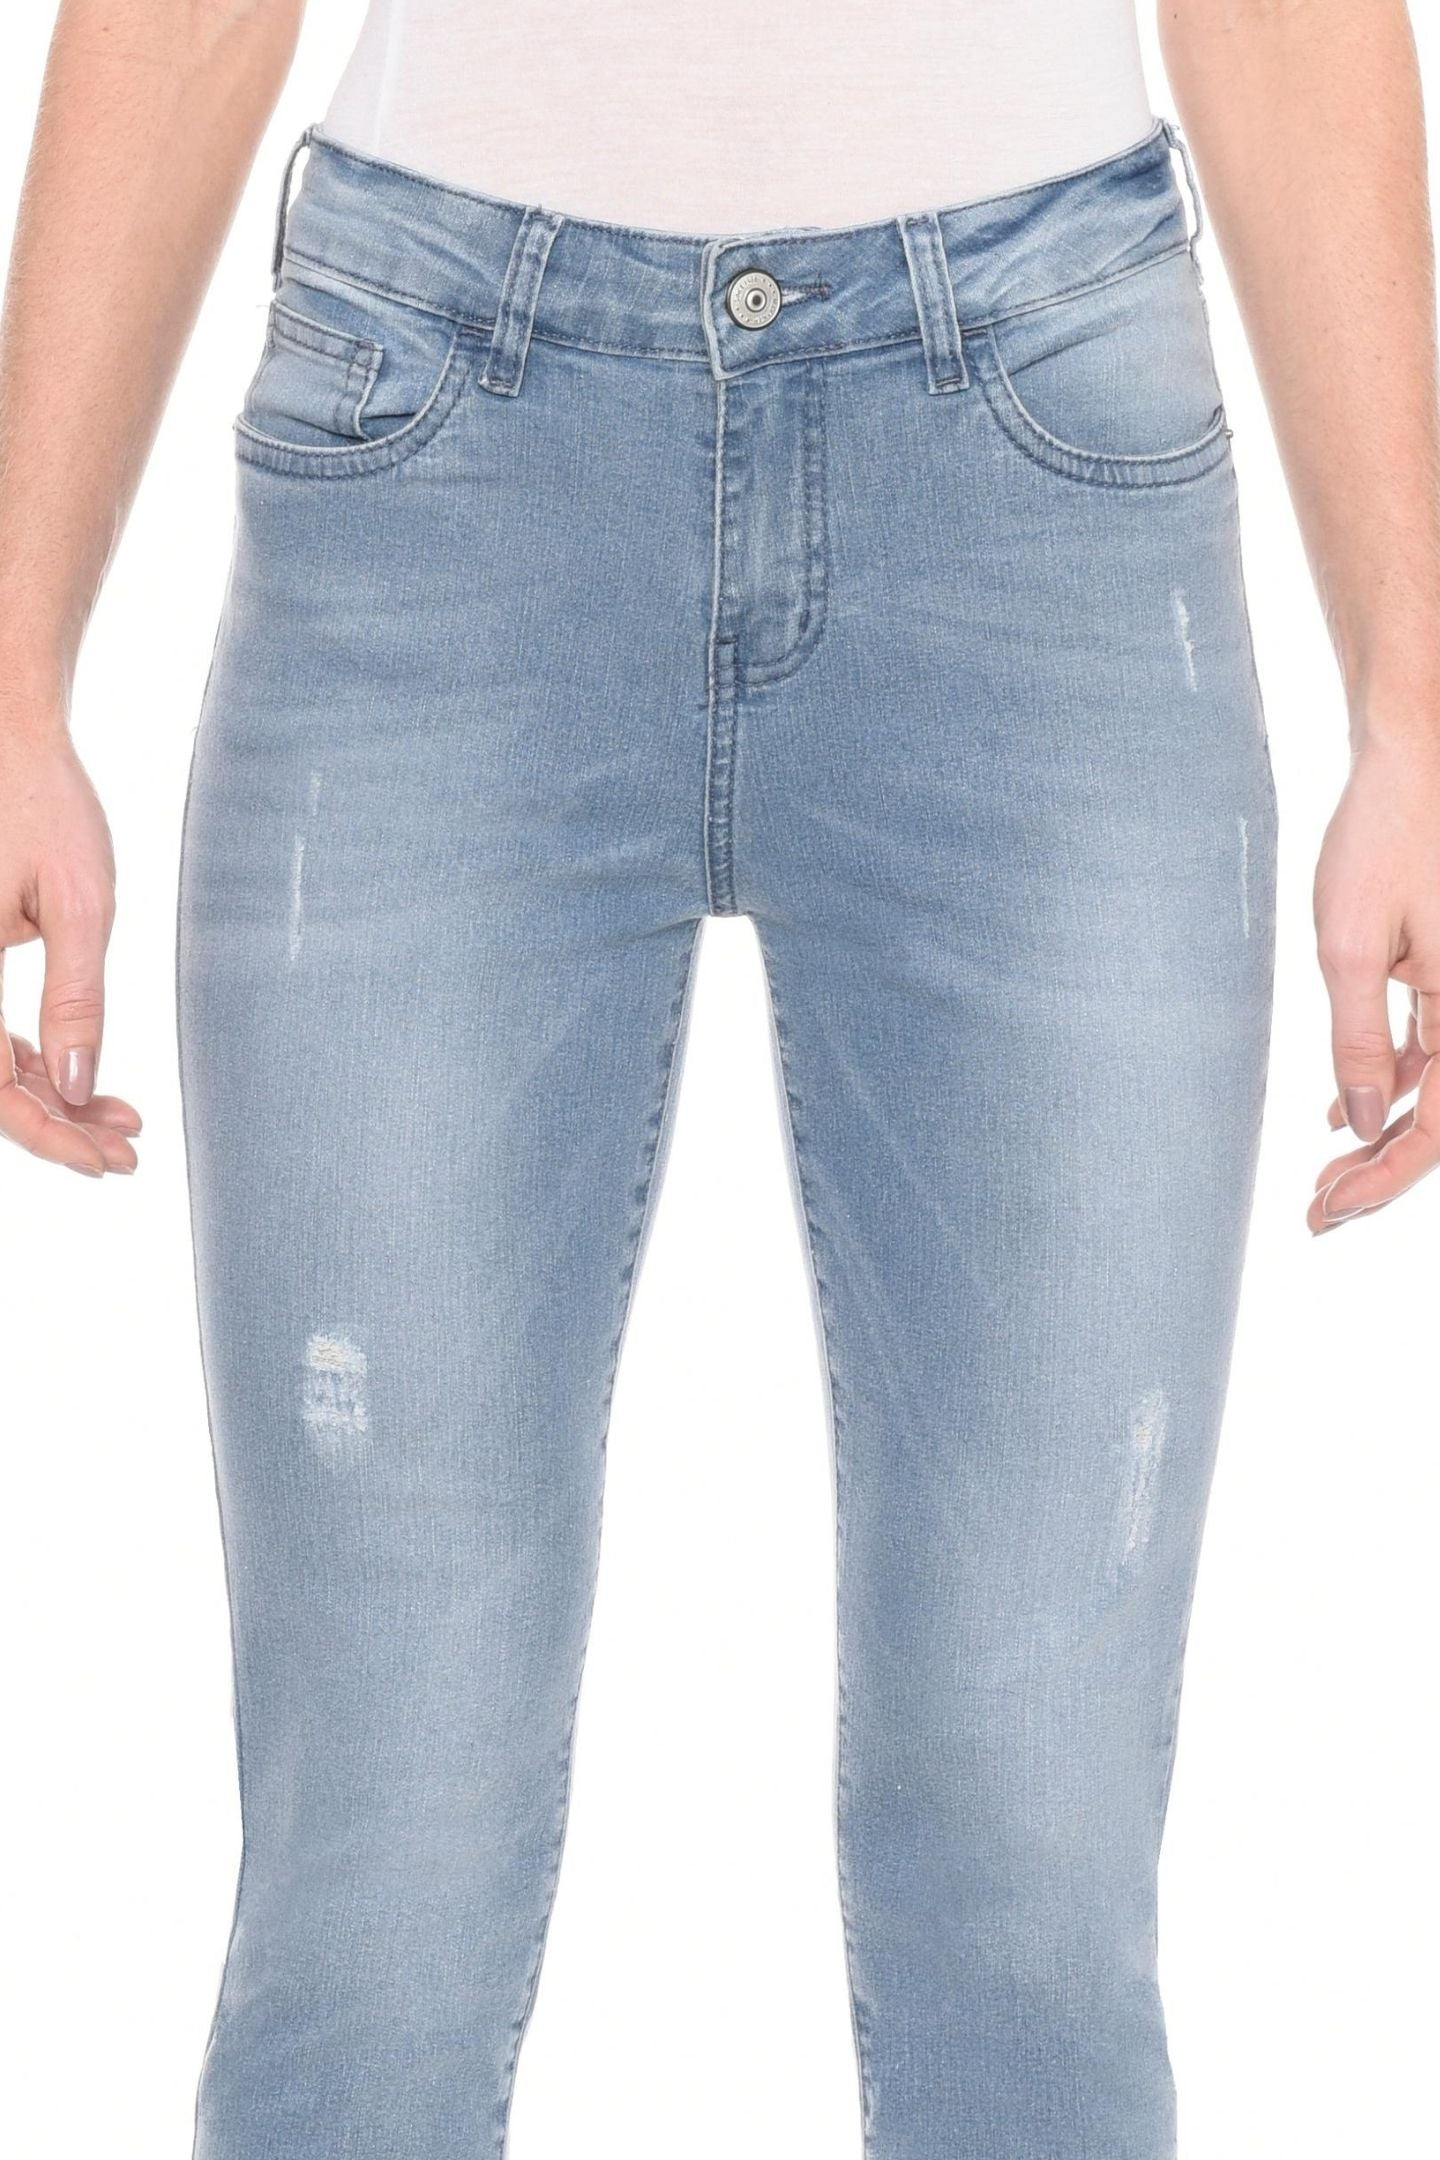 CALÇA JEANS SKINNY C3 LIGHT BLUE